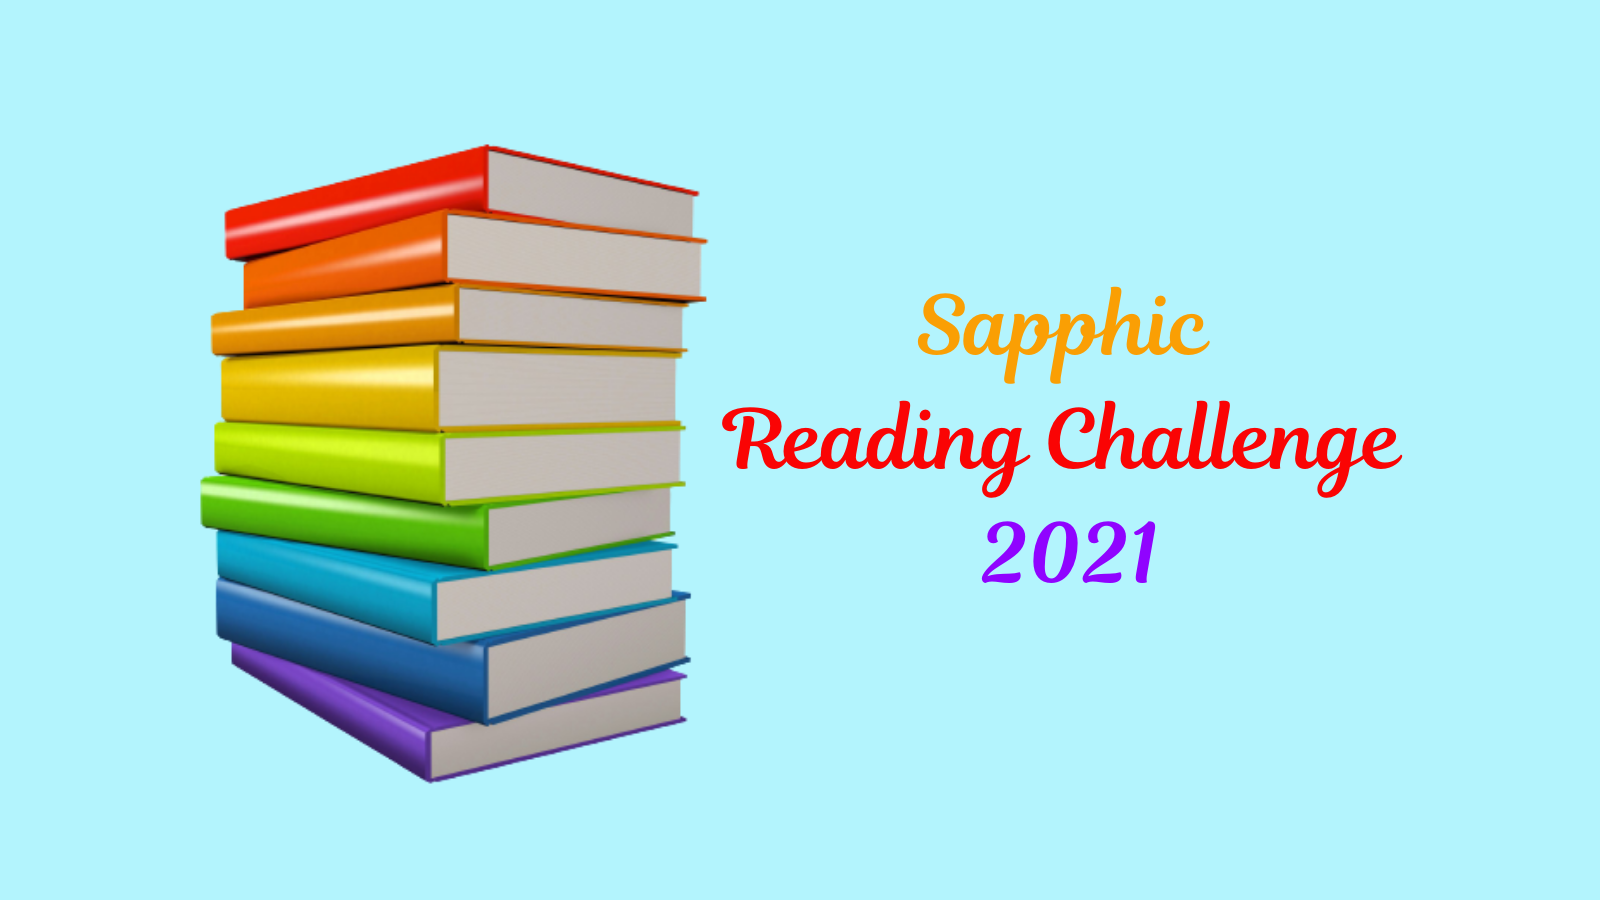 Sapphic Reading Challenge